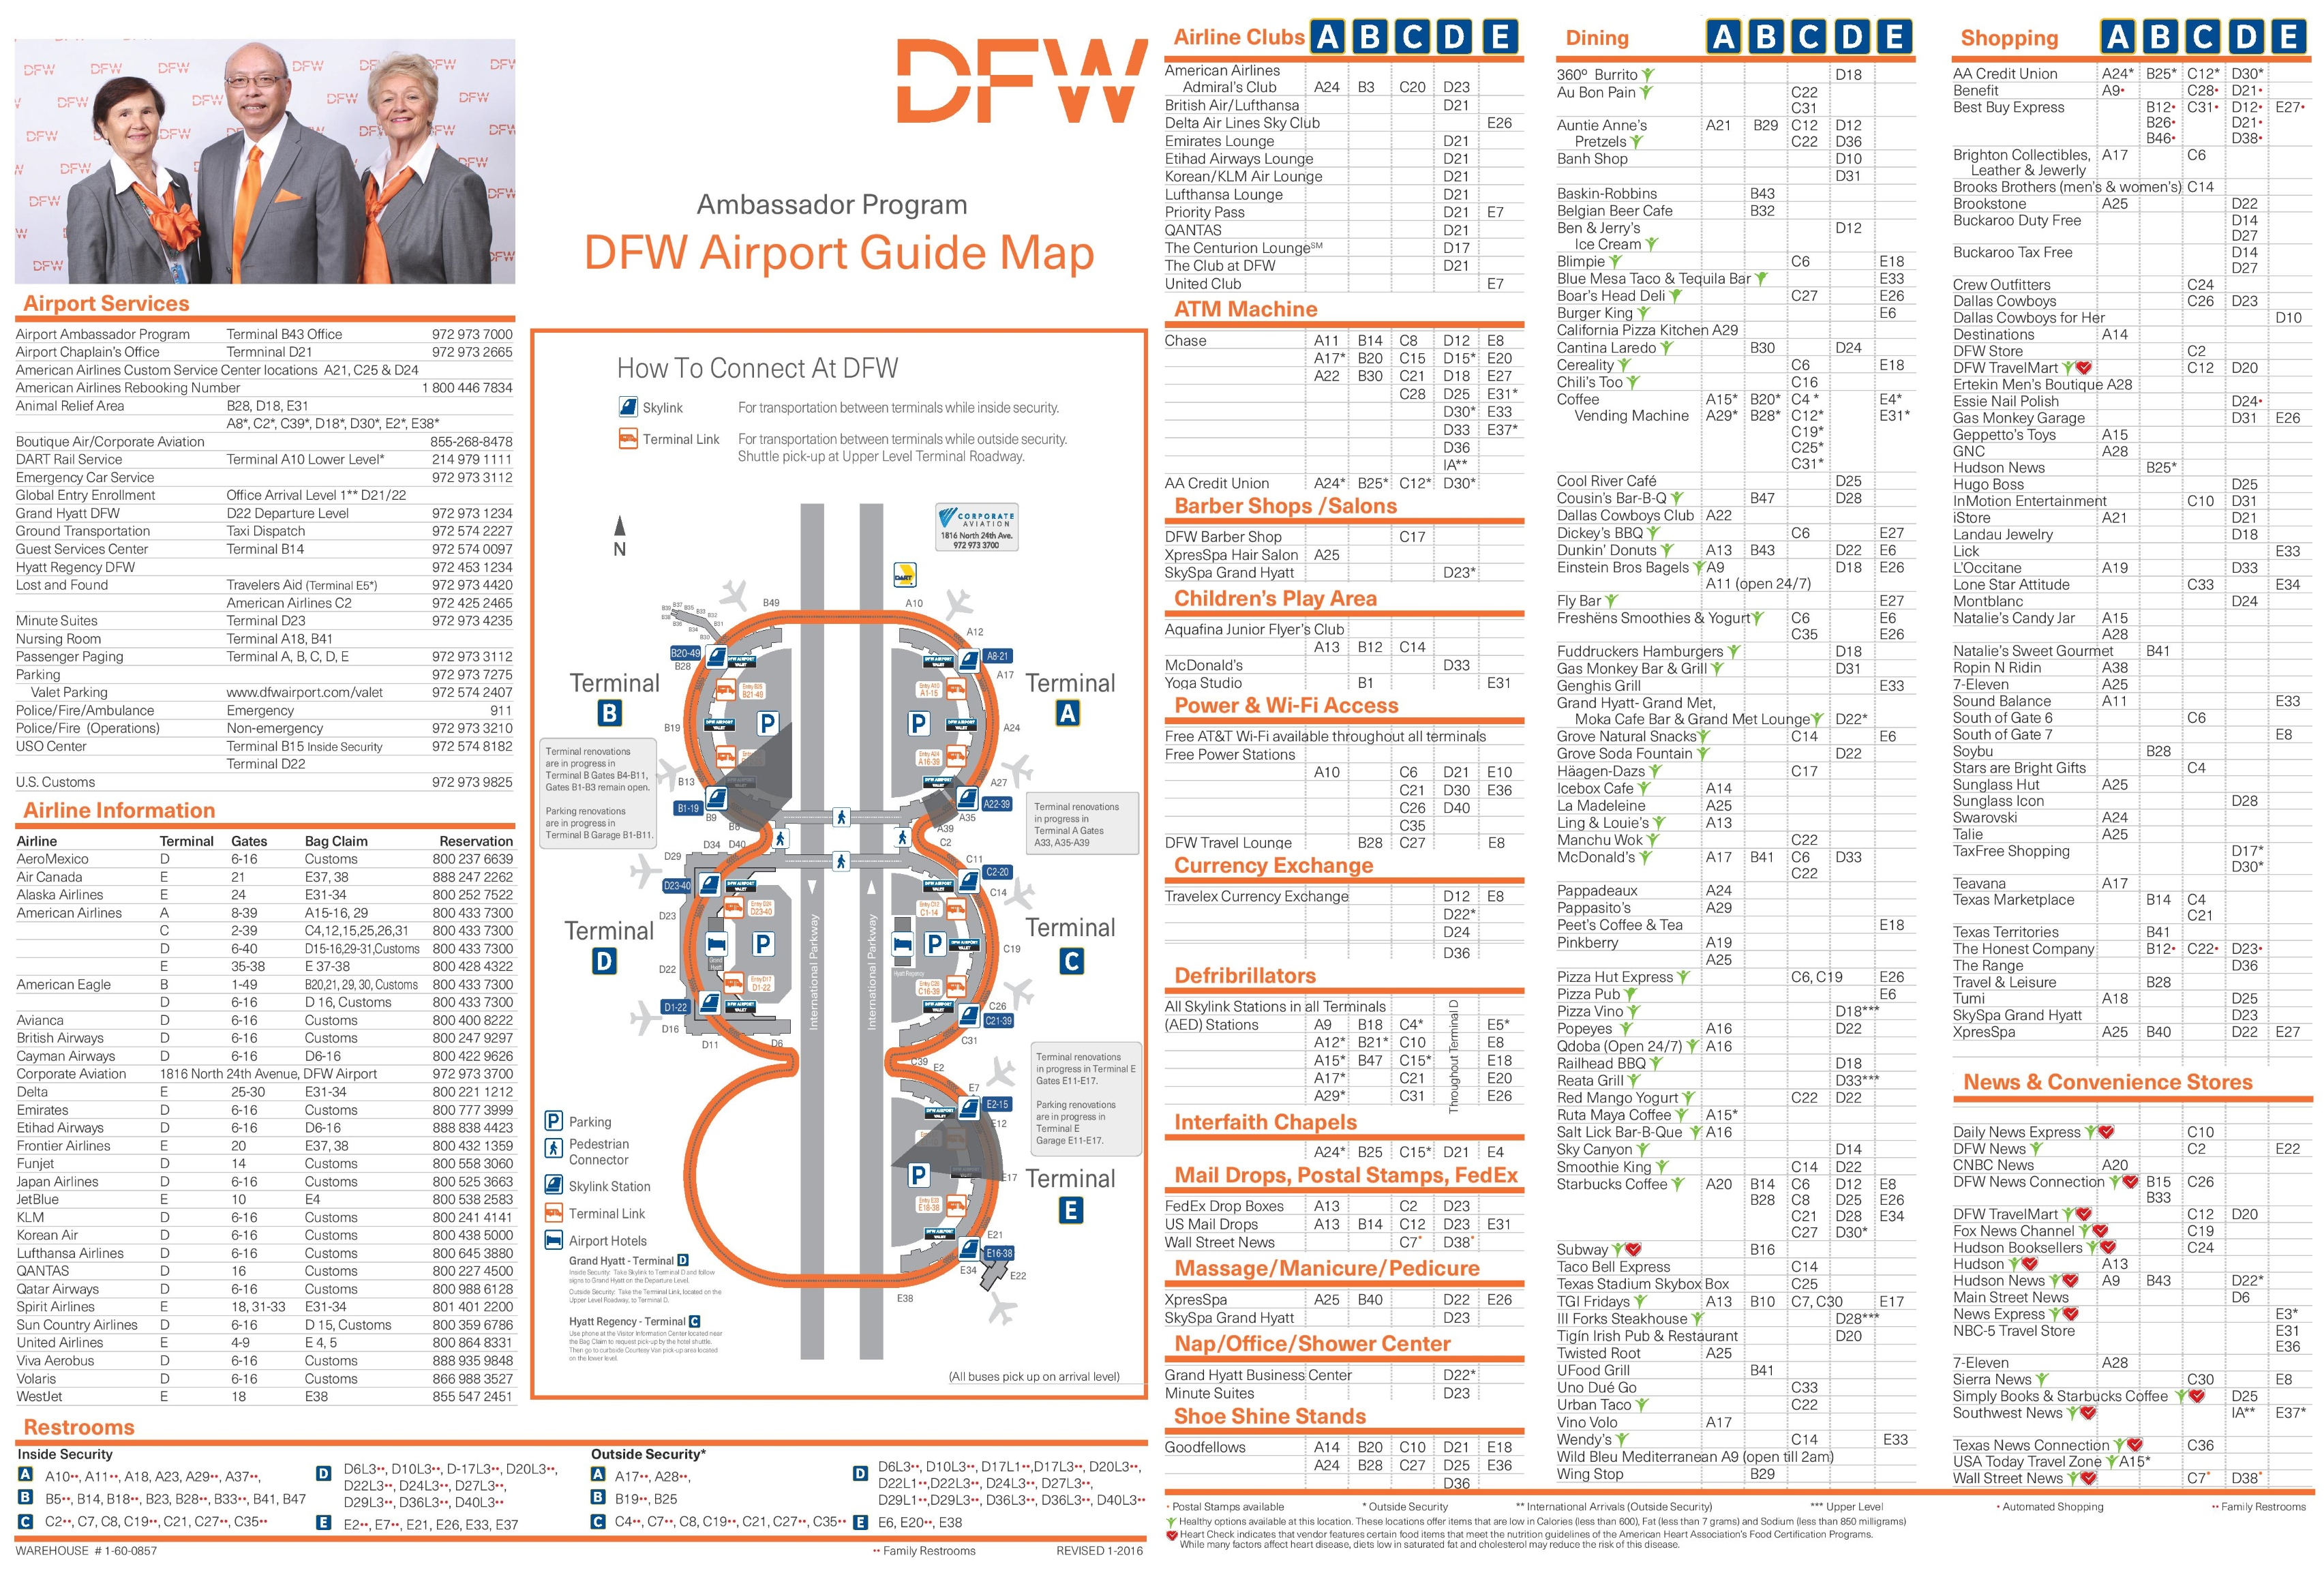 Dallas Ft Worth Airport Map Dallas Fort Worth airport map